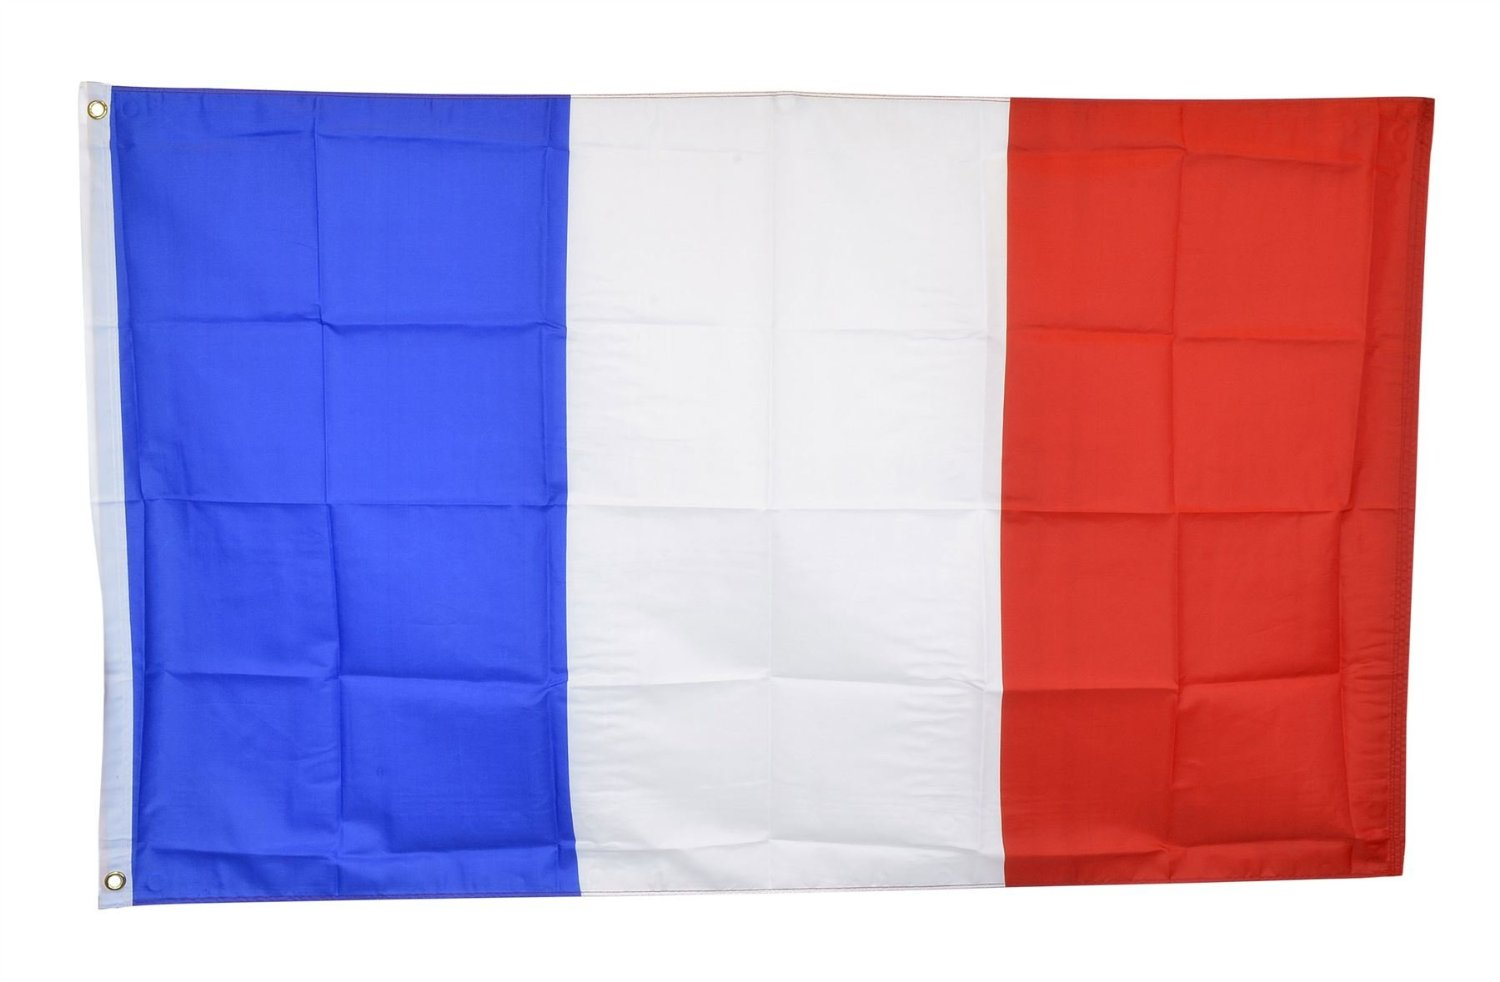 Shop72 - High Quality Printed Polyester Flags - National Countries - 100D-3X5 - FRANCE